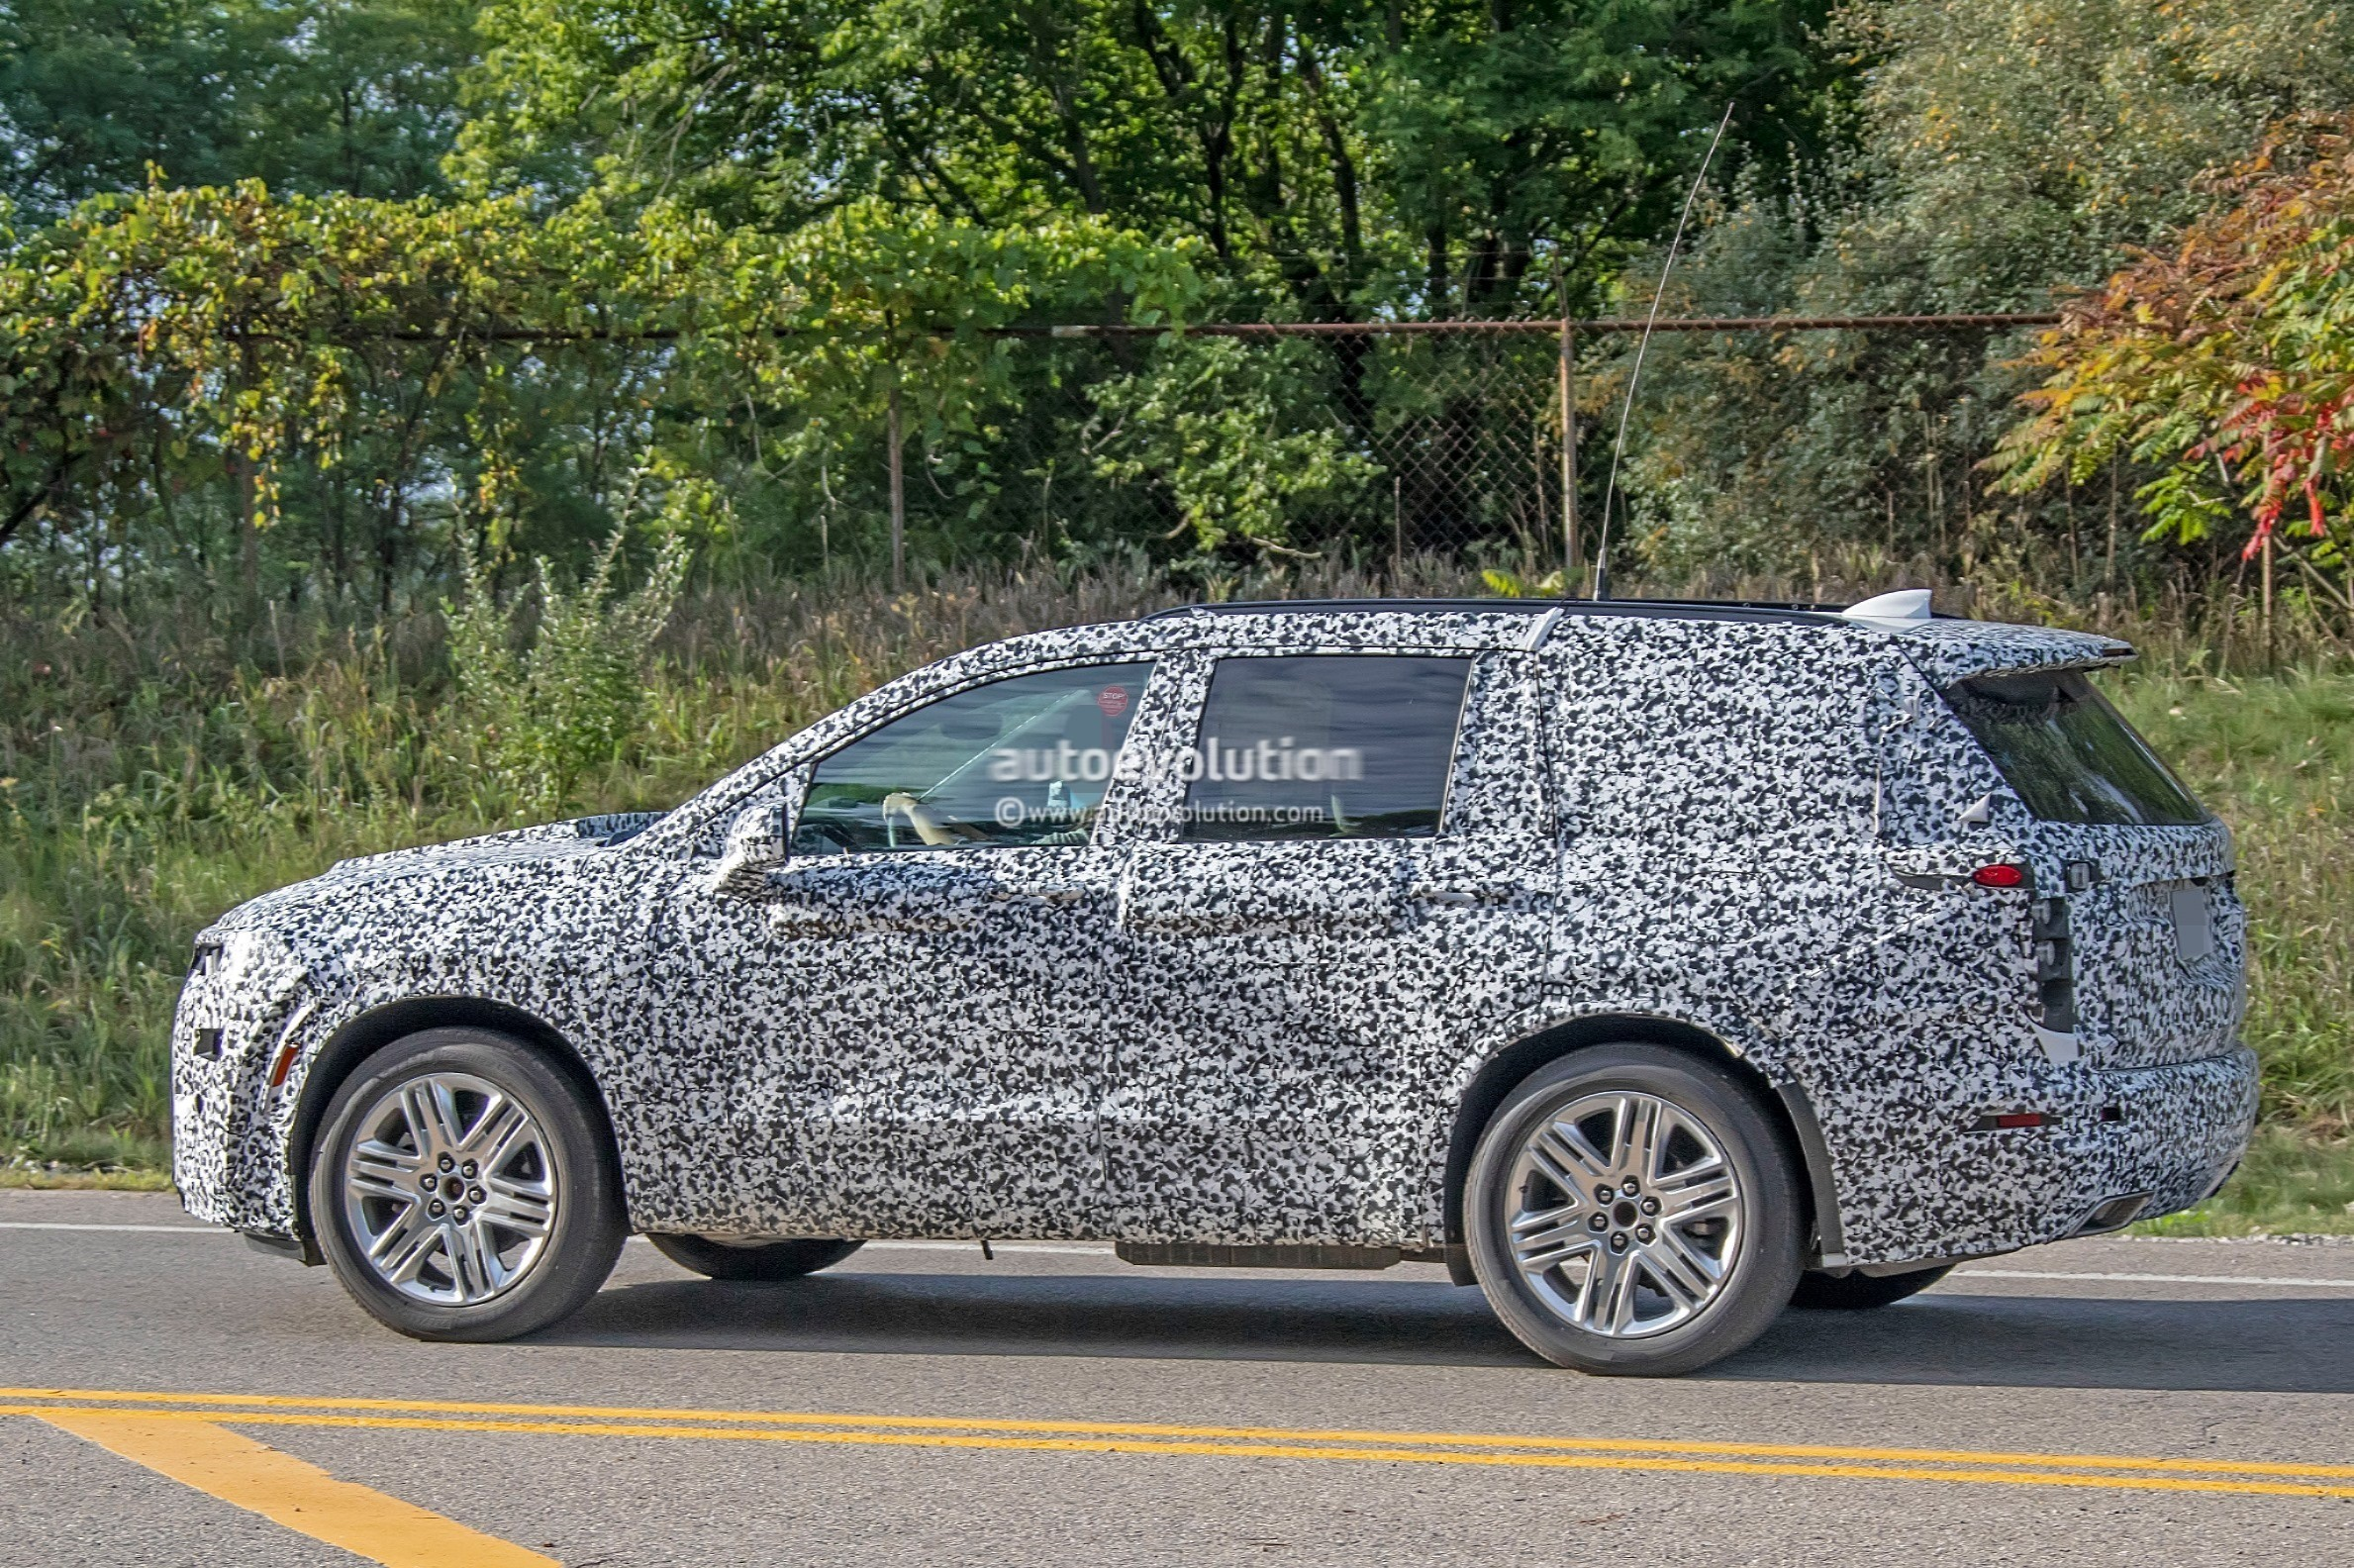 2020 Cadillac XT6 Spied With Seating For Seven People ...